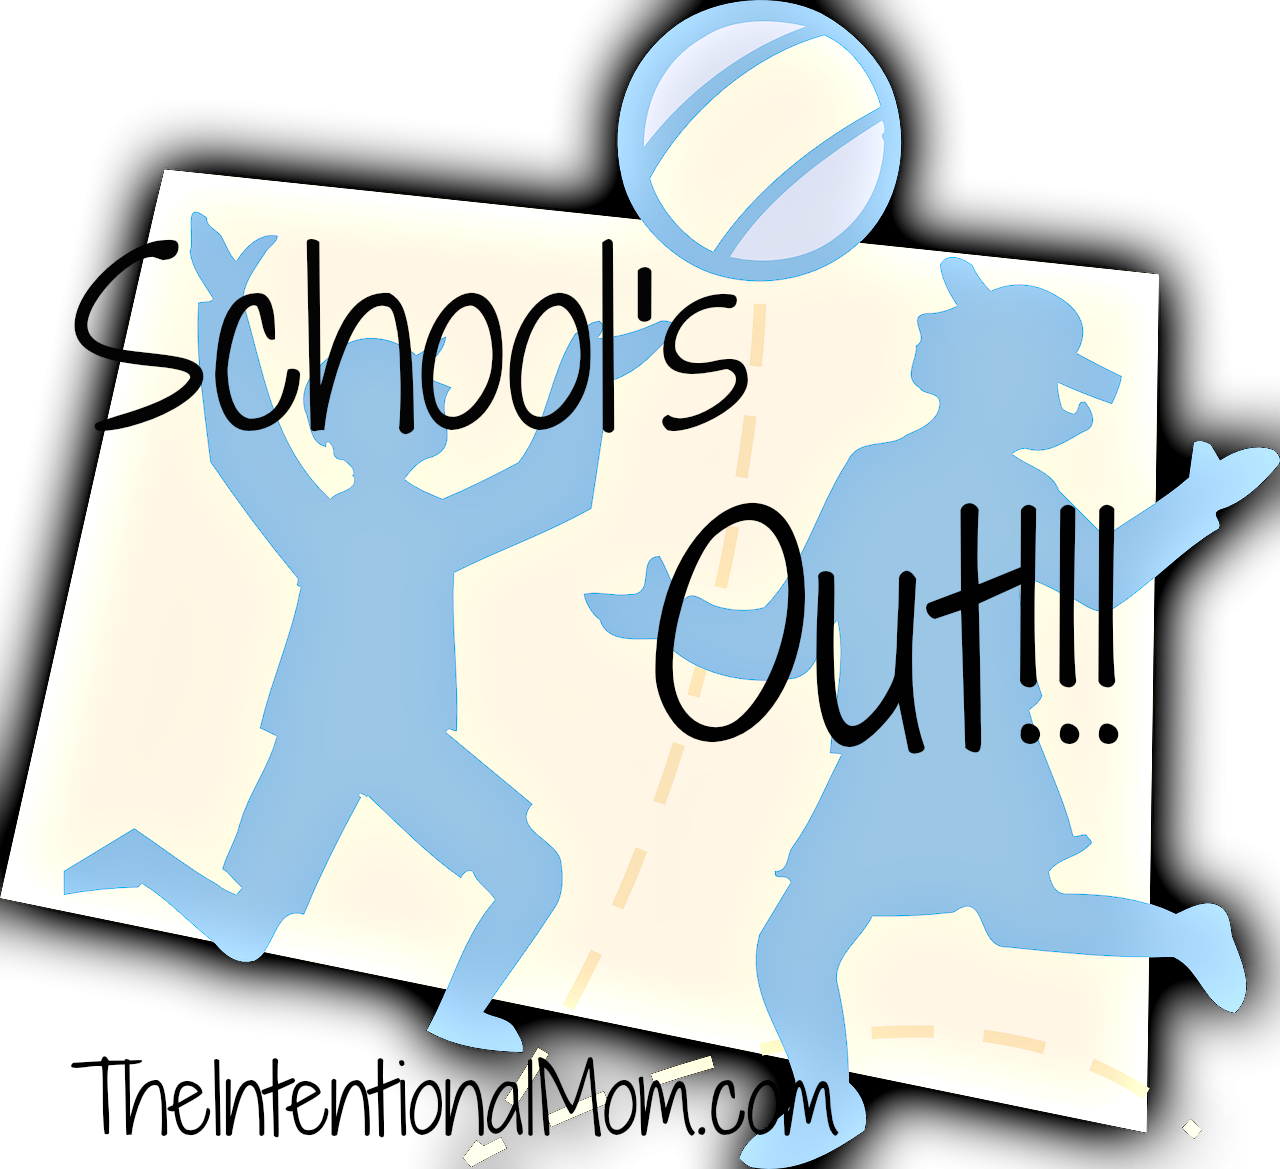 Schedule clipart homeschooling. No school there are